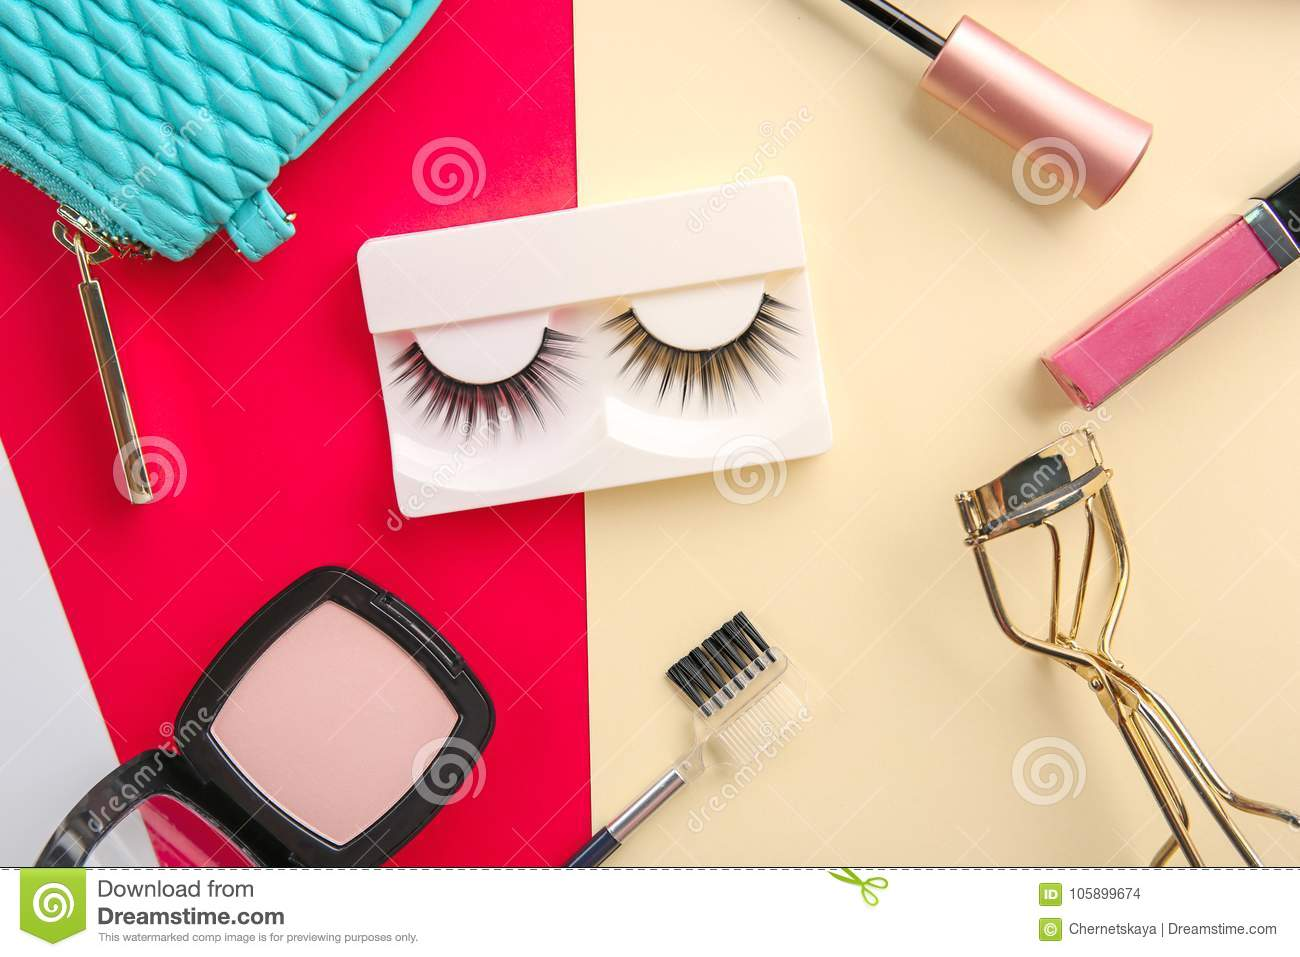 3a74971d7d5 Set For Makeup With False Eyelashes On Background Stock Photo ...